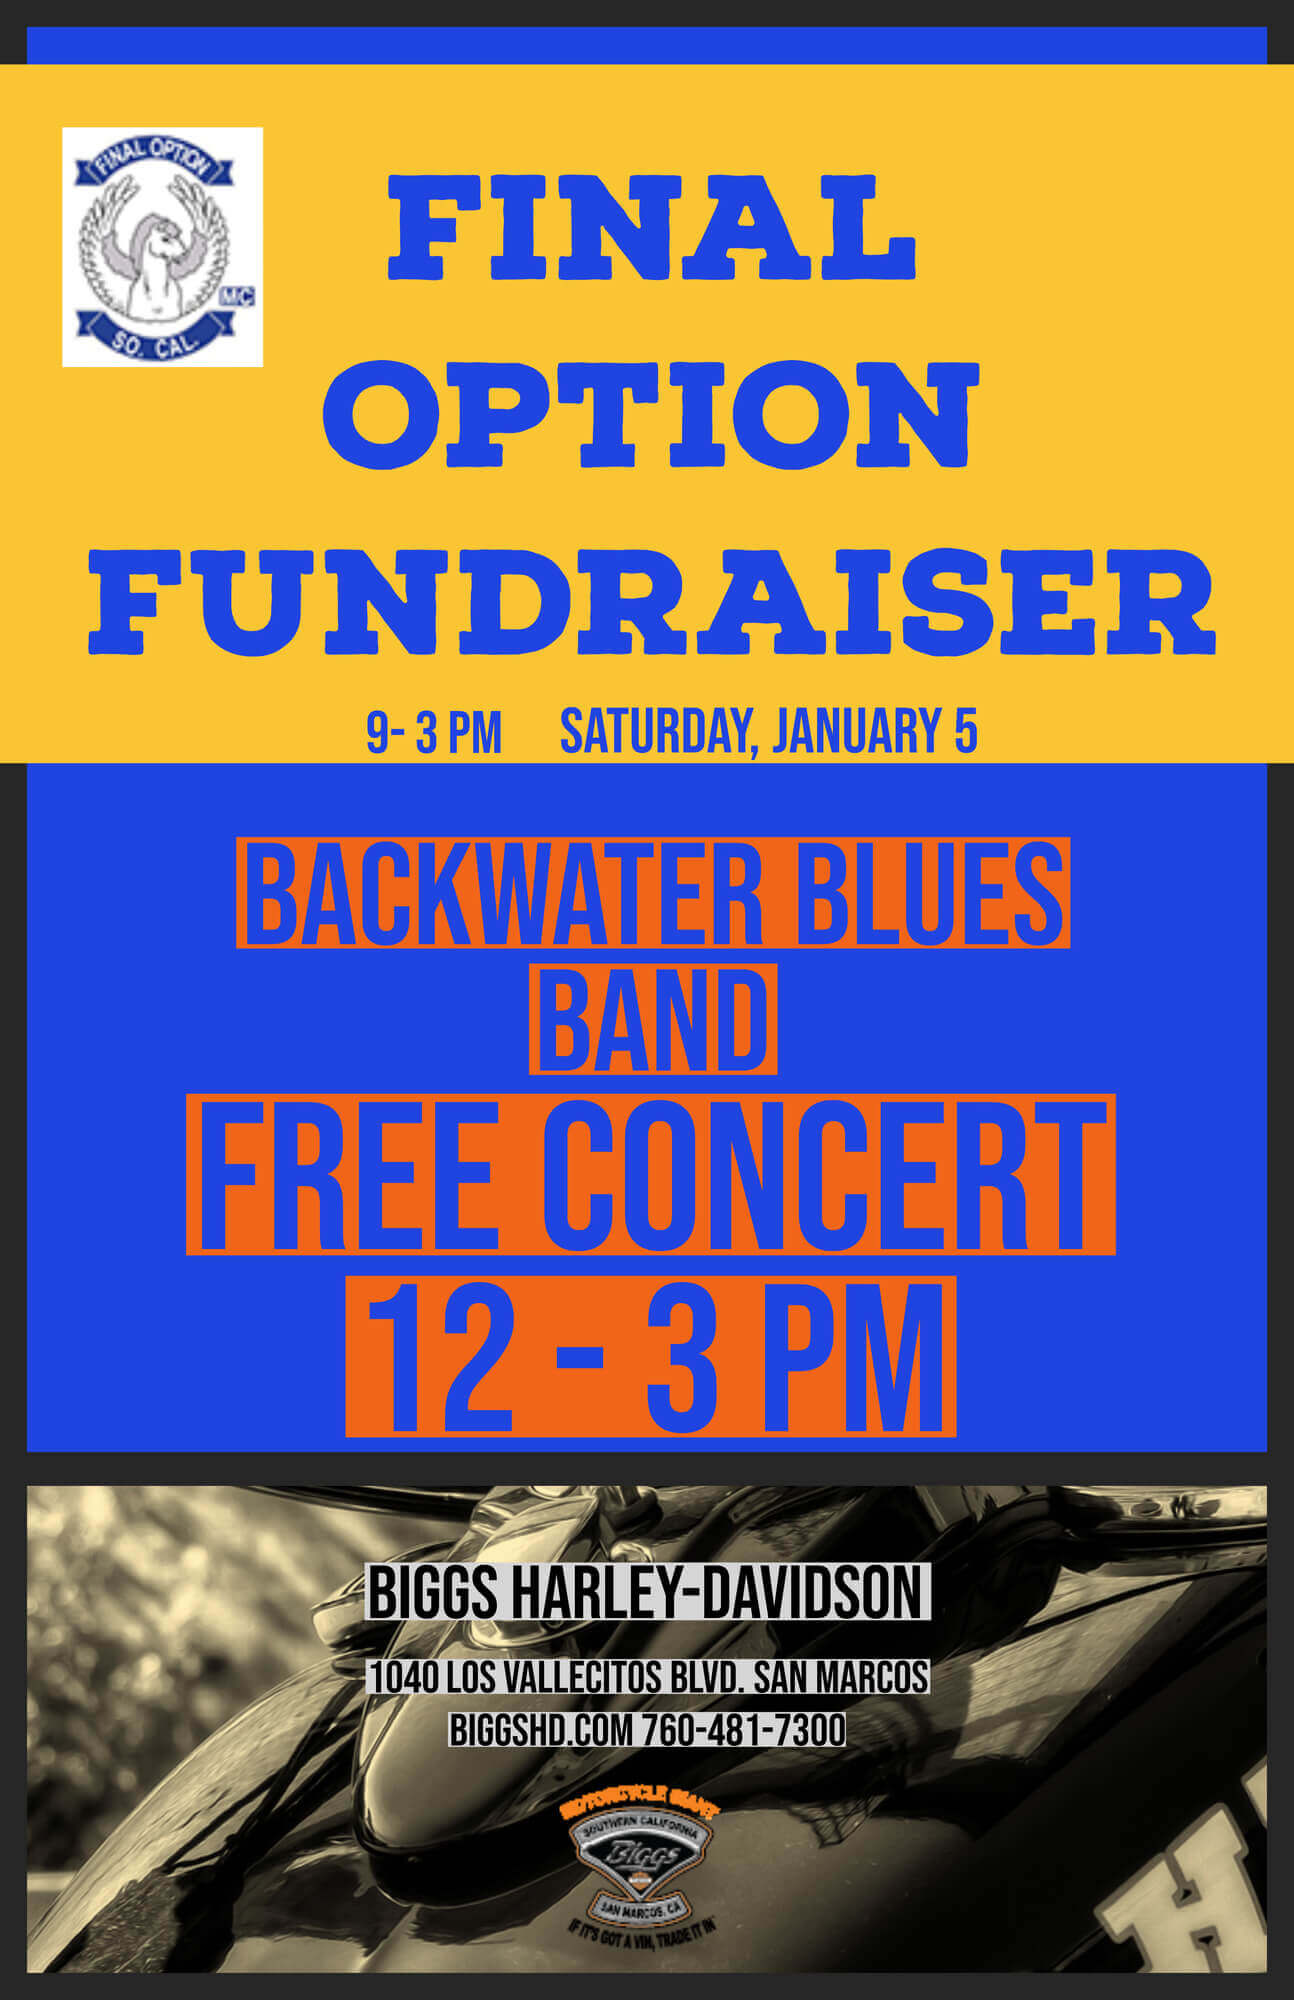 Final Option Fundraiser